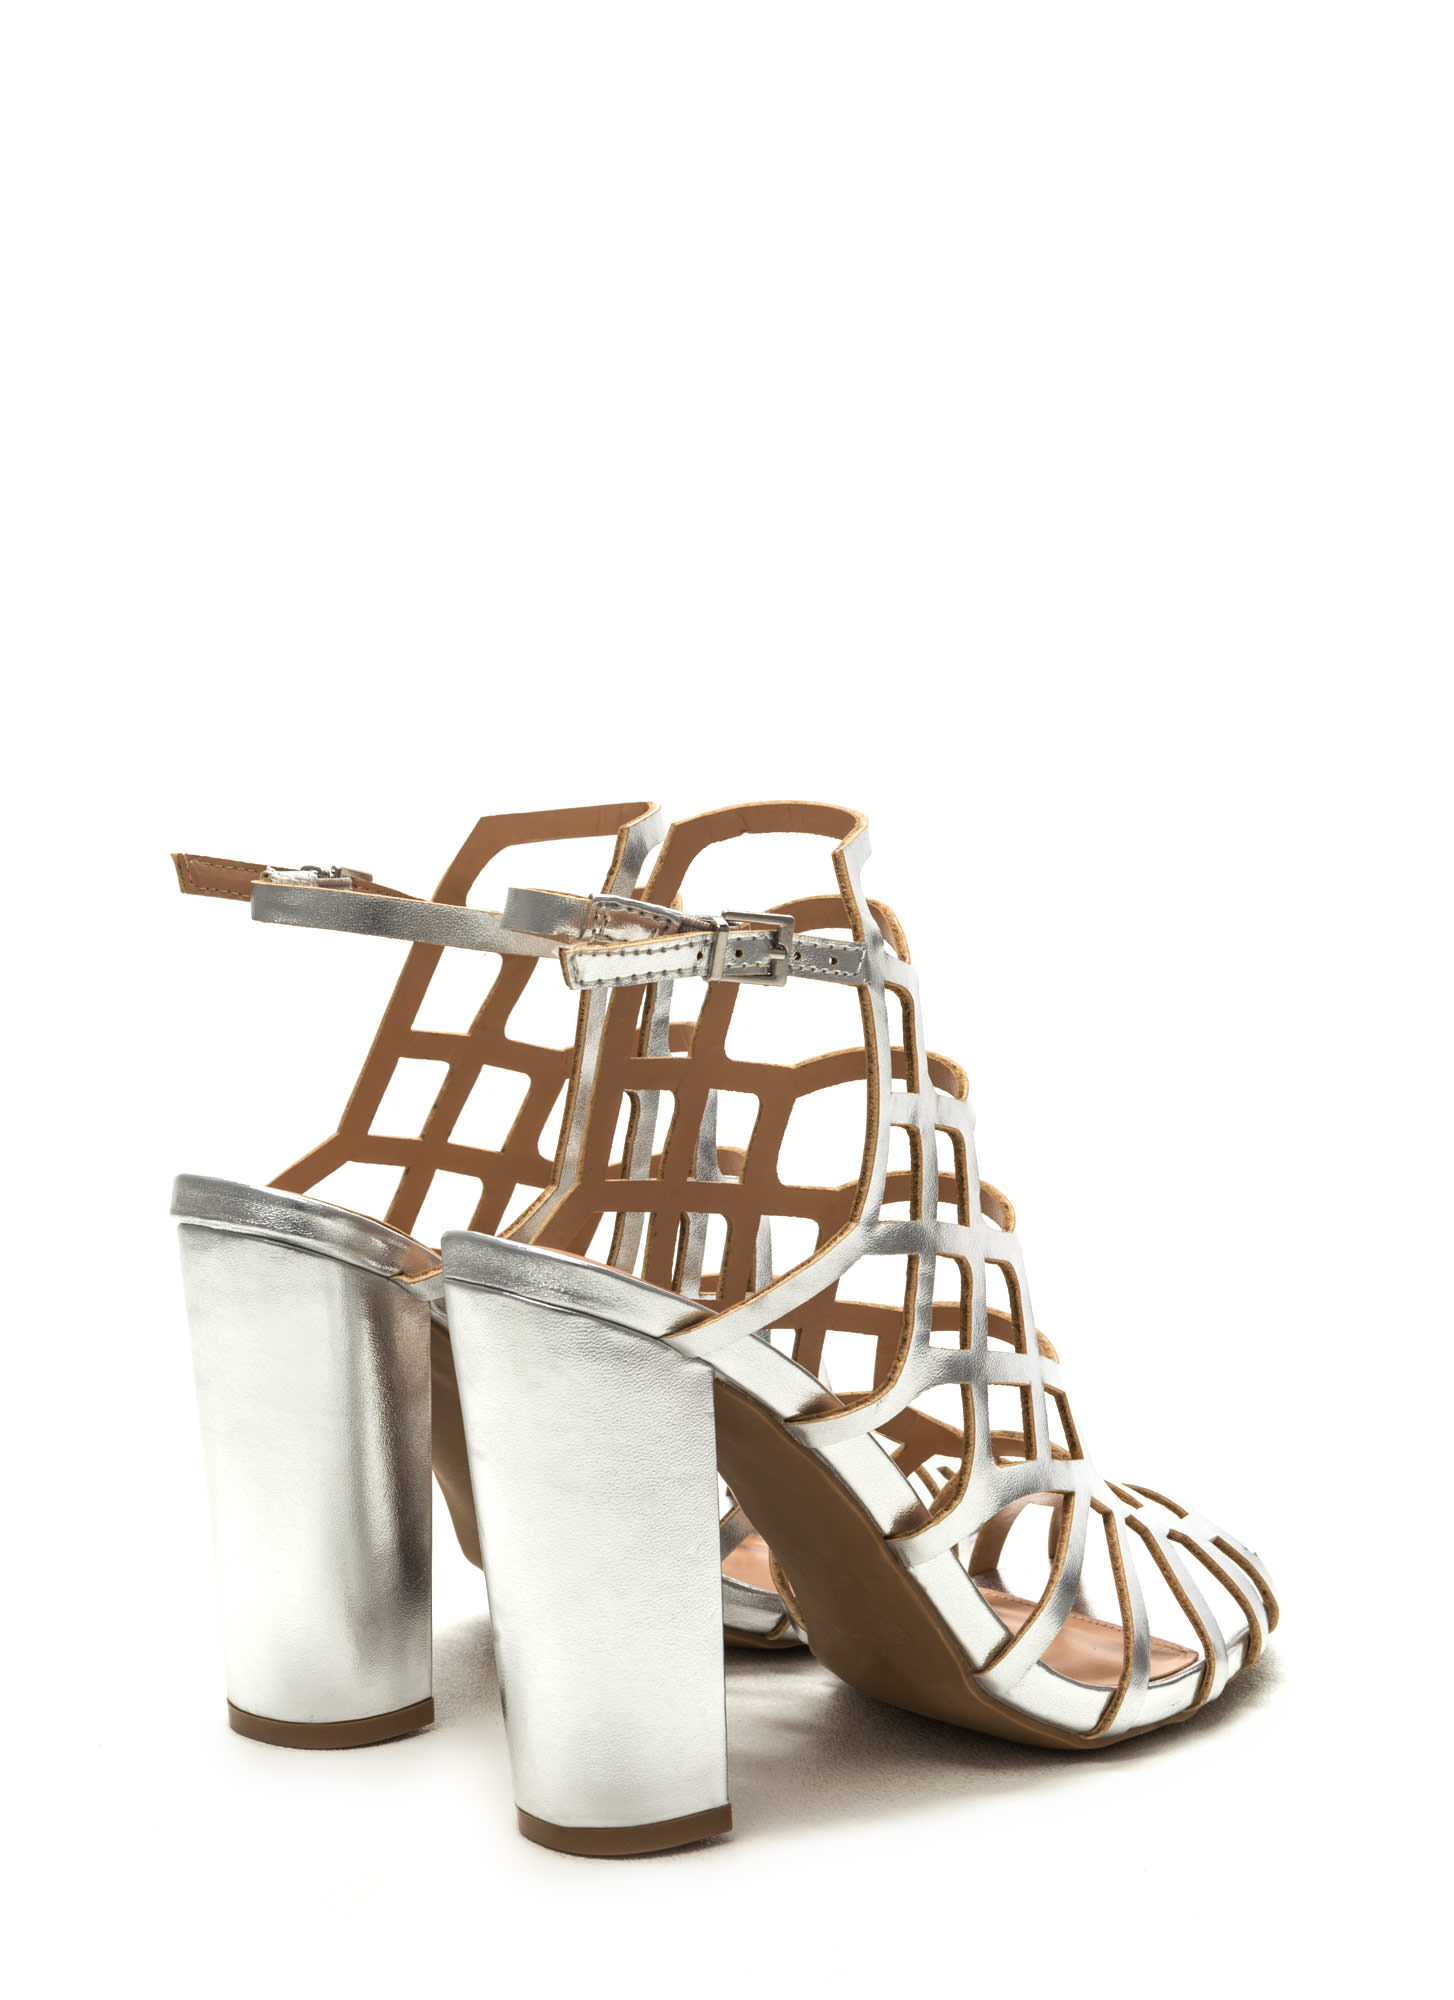 Fresh 'N Fancy Metallic Caged Heels SILVER